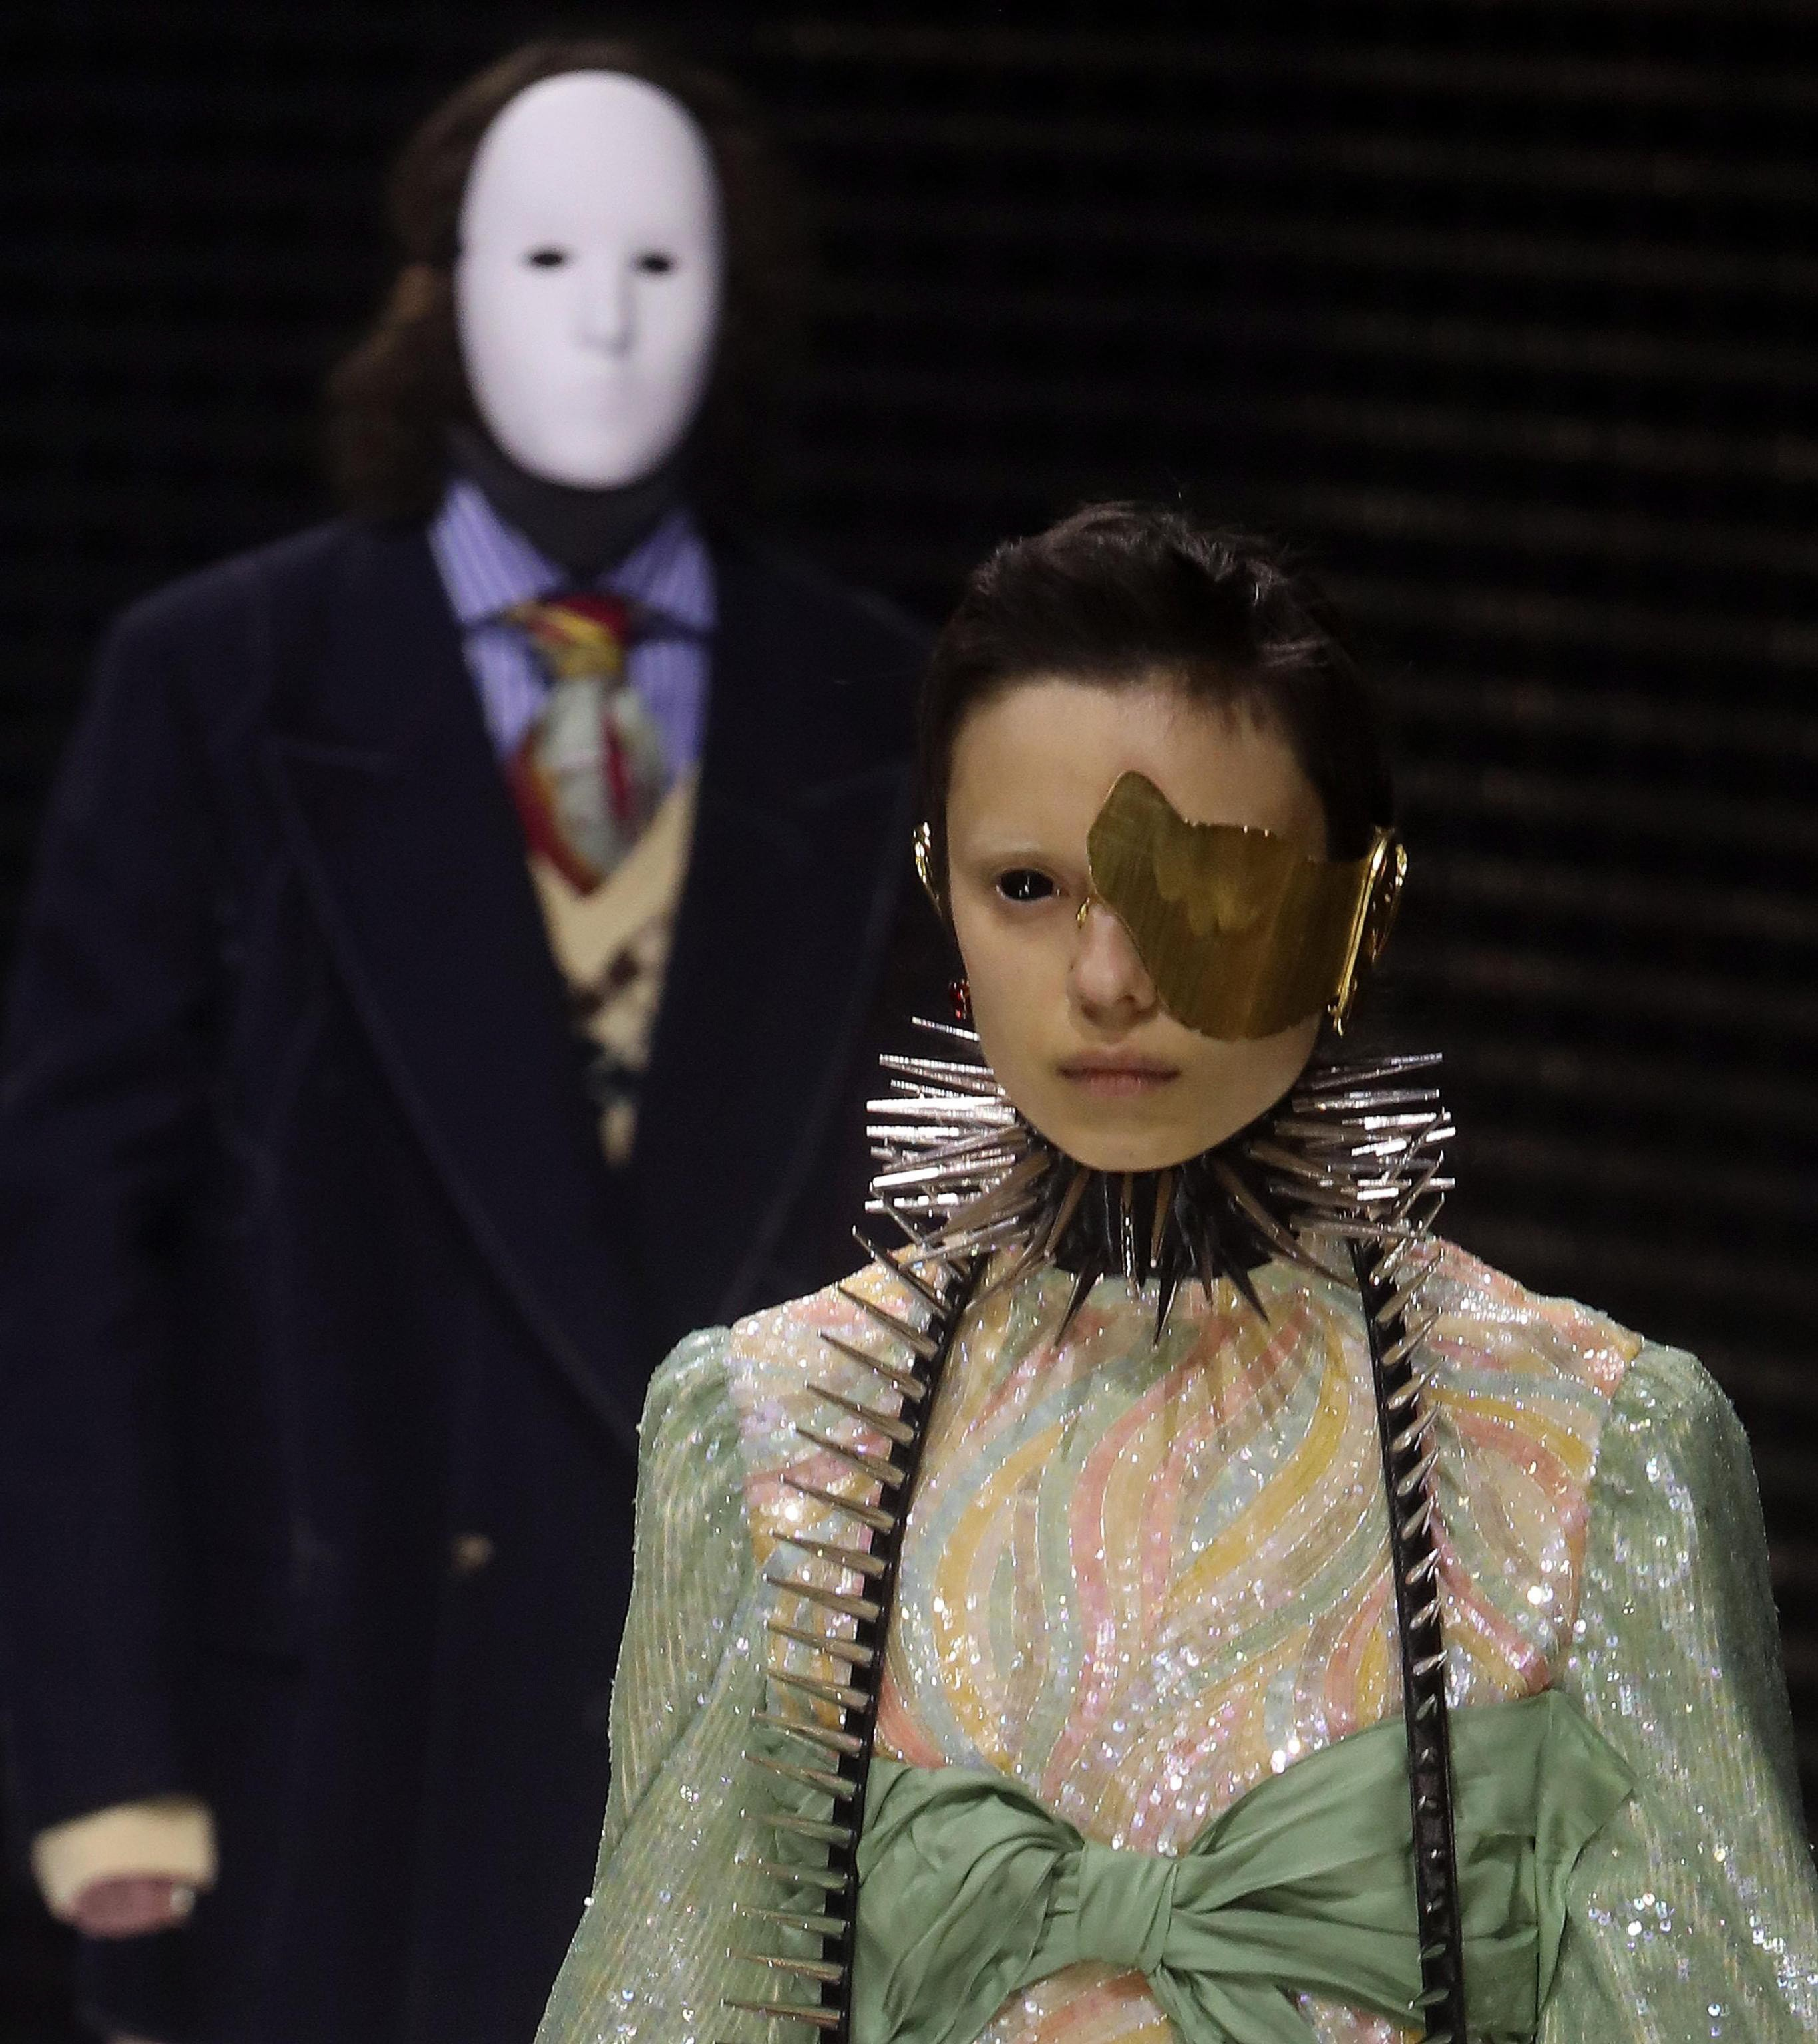 f45a4ec4eb4e Milan Fashion Week: our top autumn/winter fashion trends from the best  shows | South China Morning Post